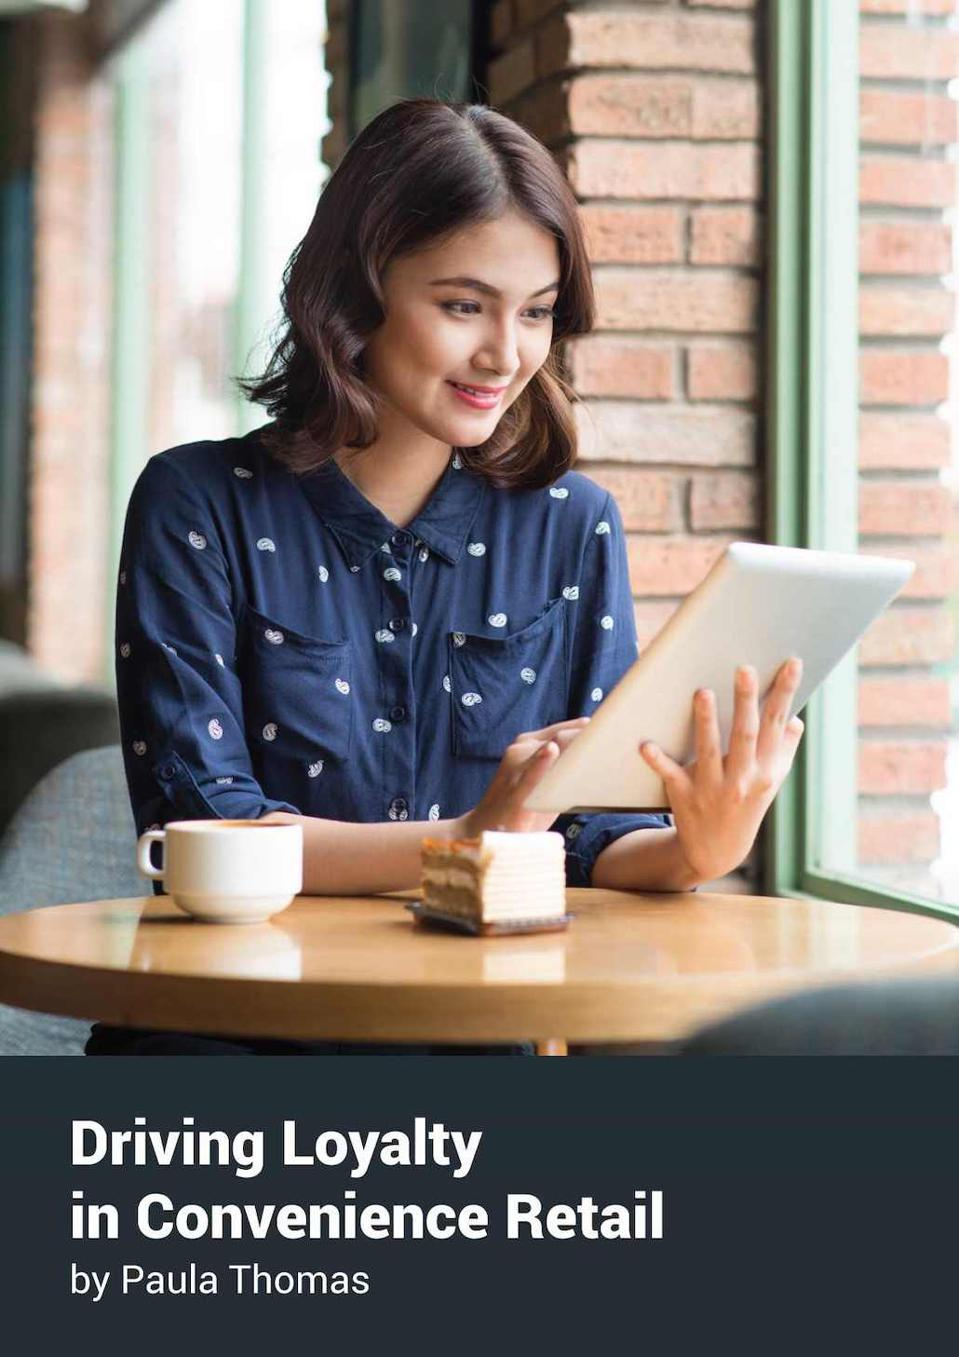 Driving Loyalty in Convenience Retail by Paula Thomas